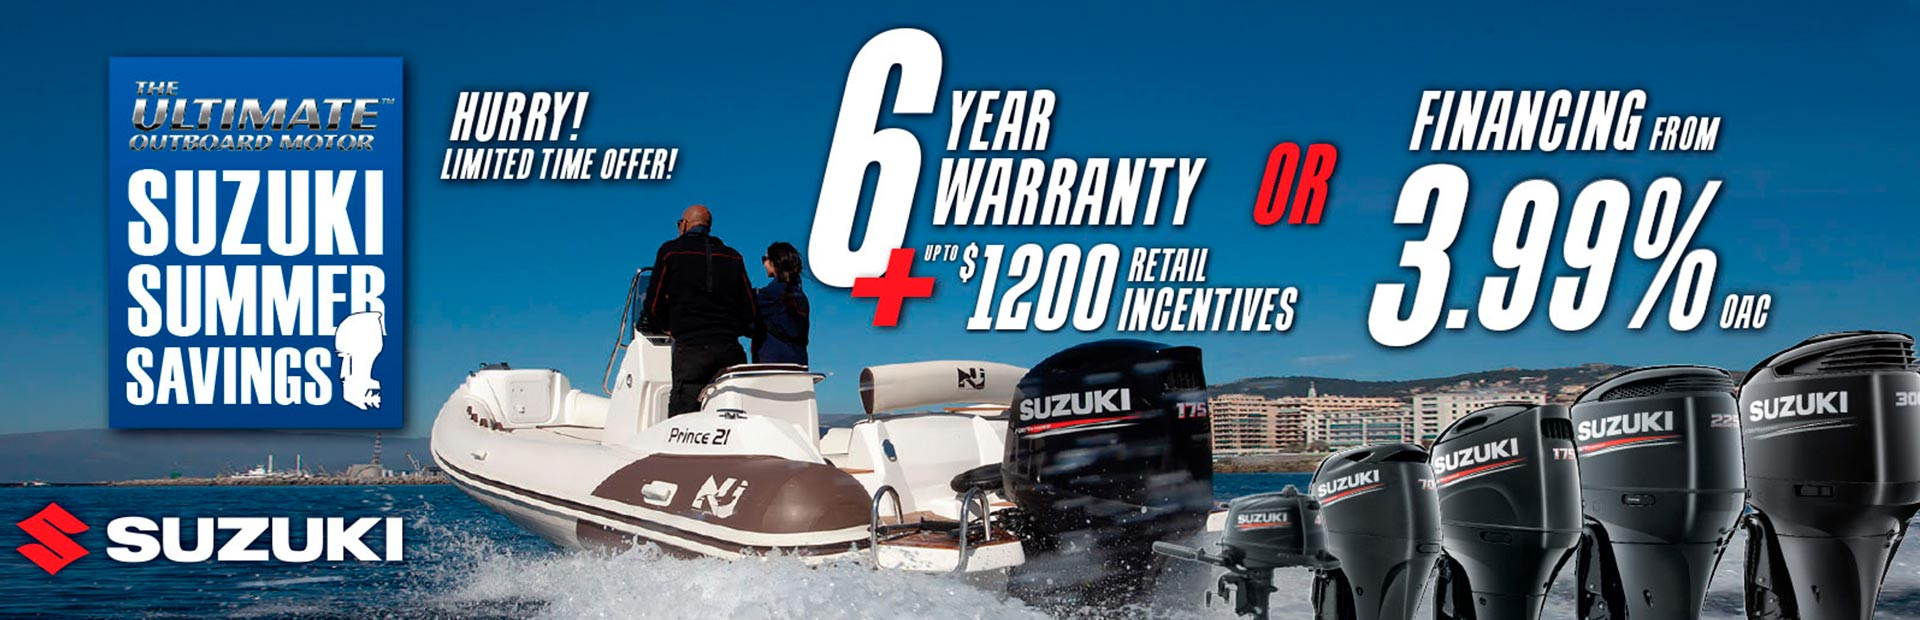 Suzuki: SUZUKI MARINE SUMMER SAVINGS